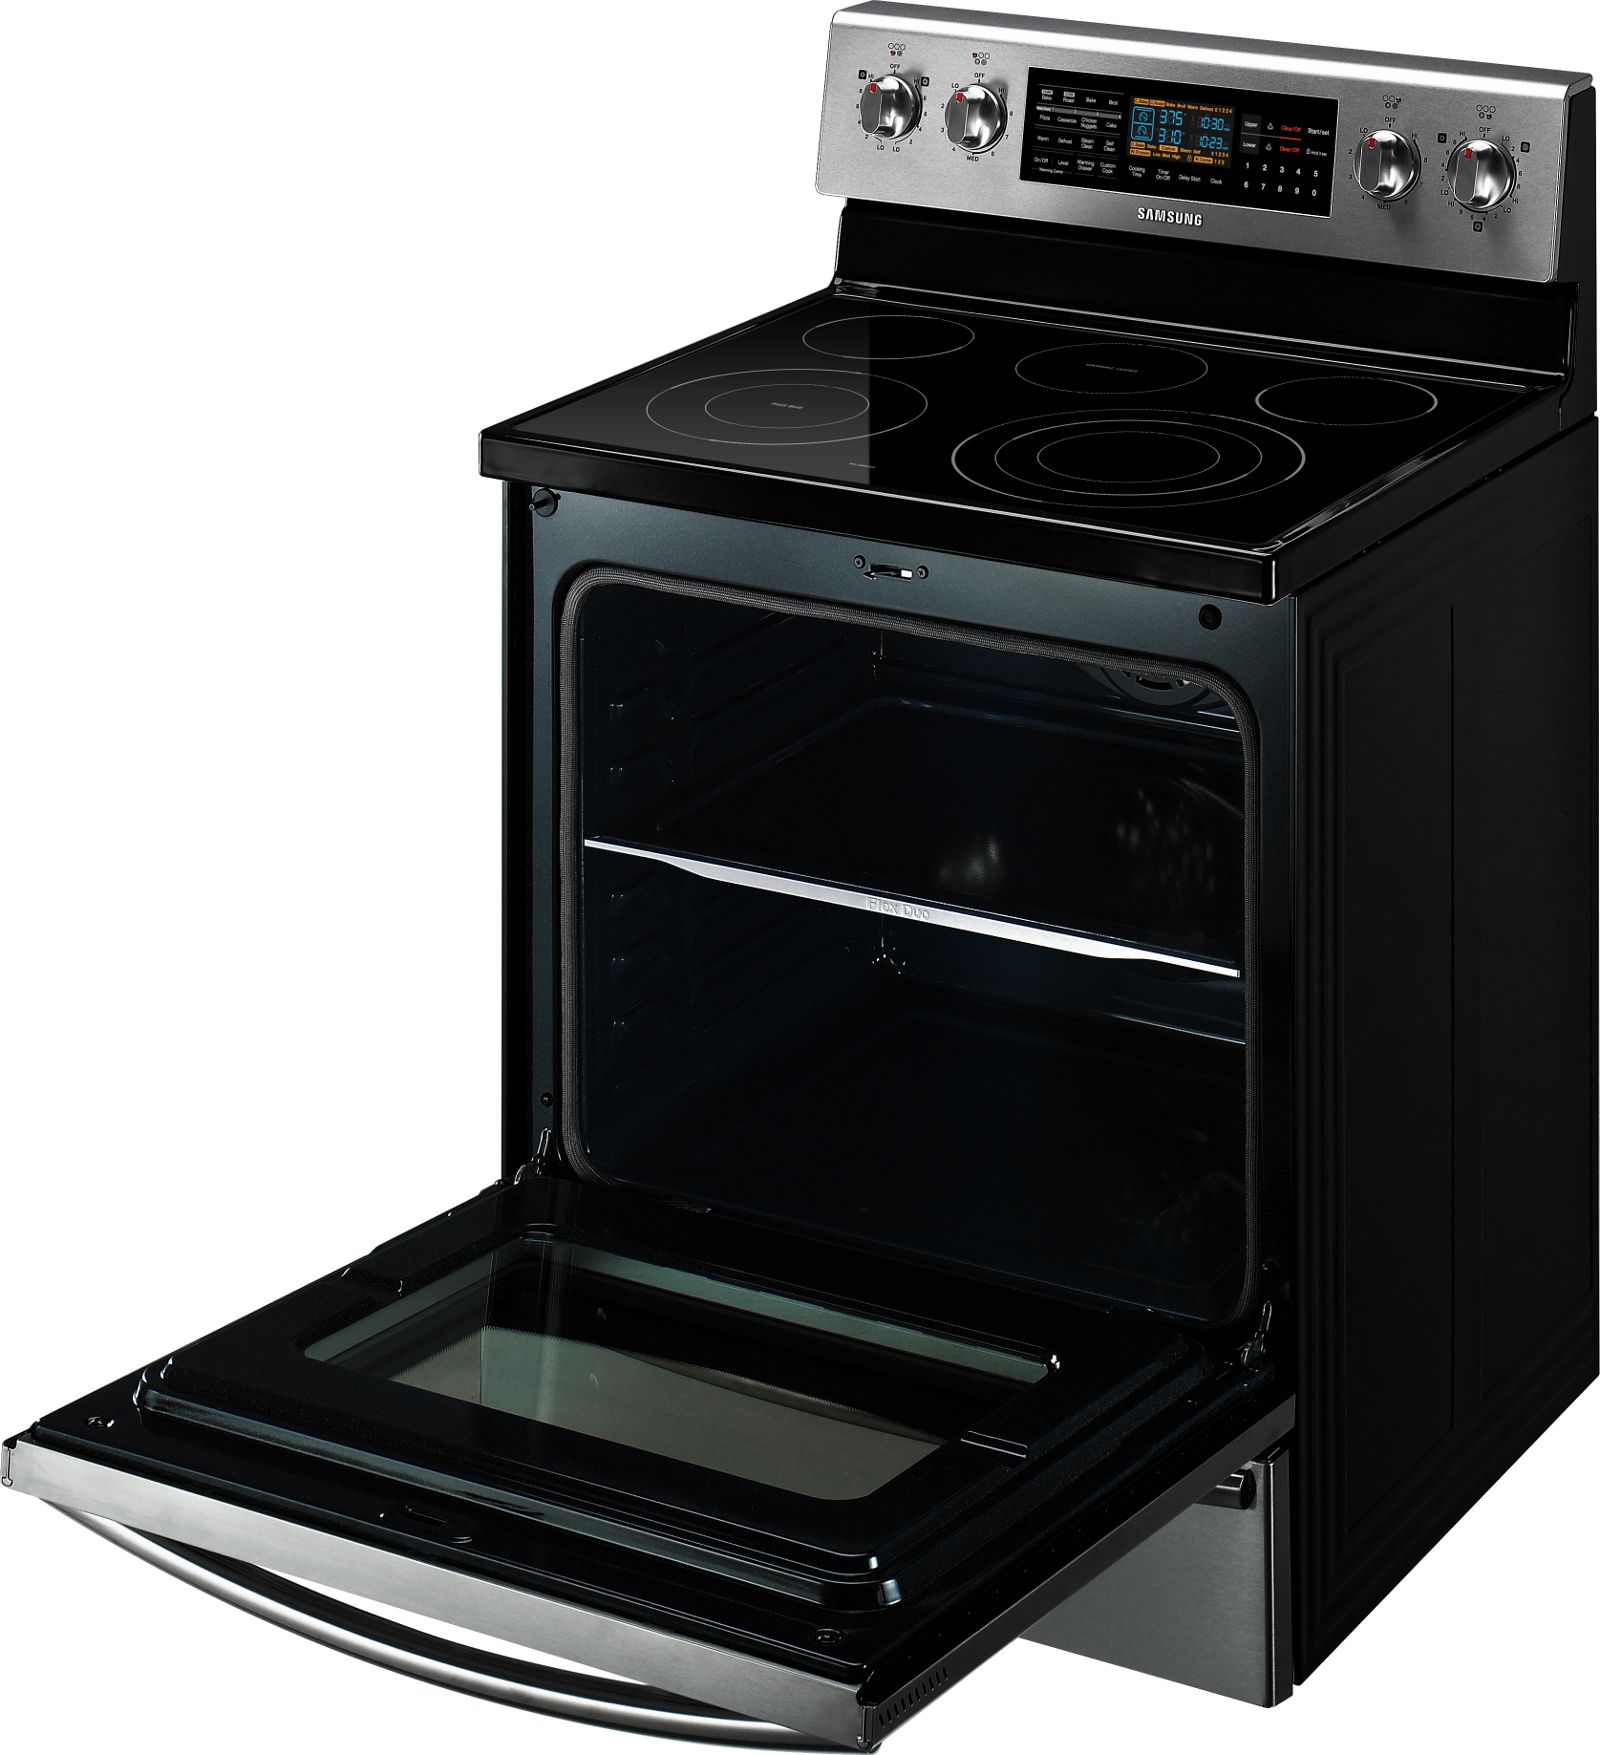 Samsung 6.6 cu. ft. Dual-Oven Electric Range - Stainless Steel